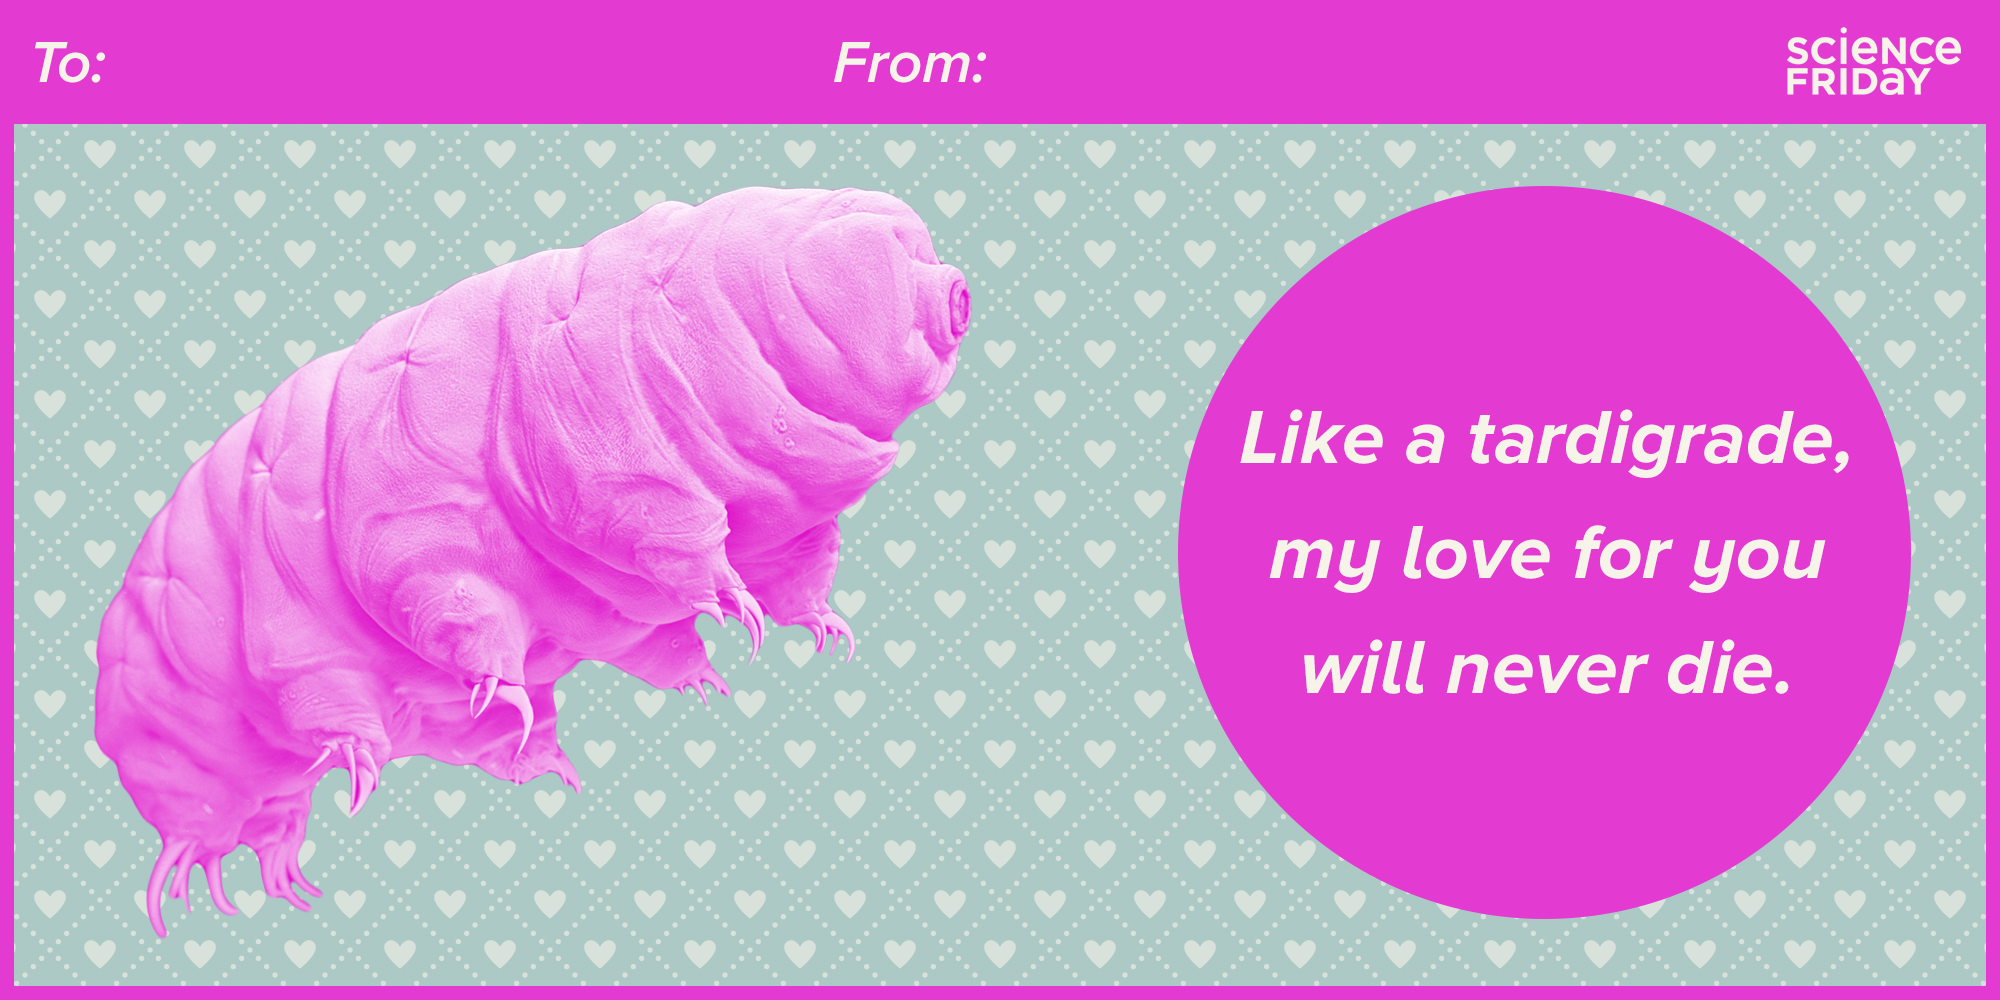 from Science Friday's 2017 Science Valentines